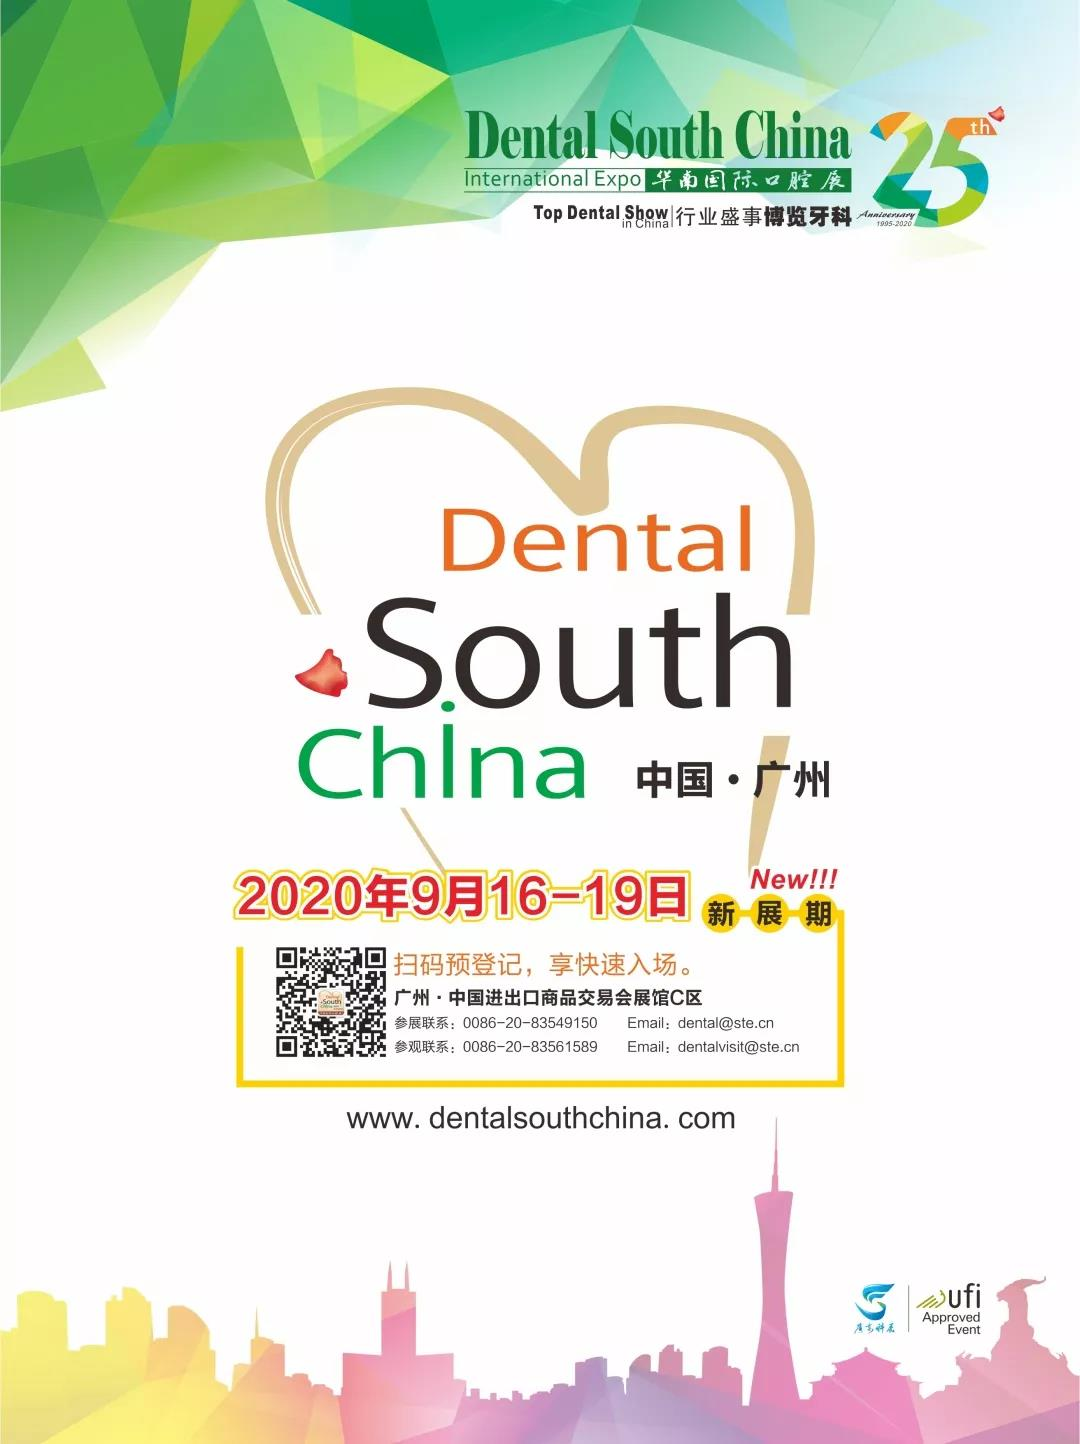 Determine the exhibition time of the 25th South China International oral exhibition in 2020